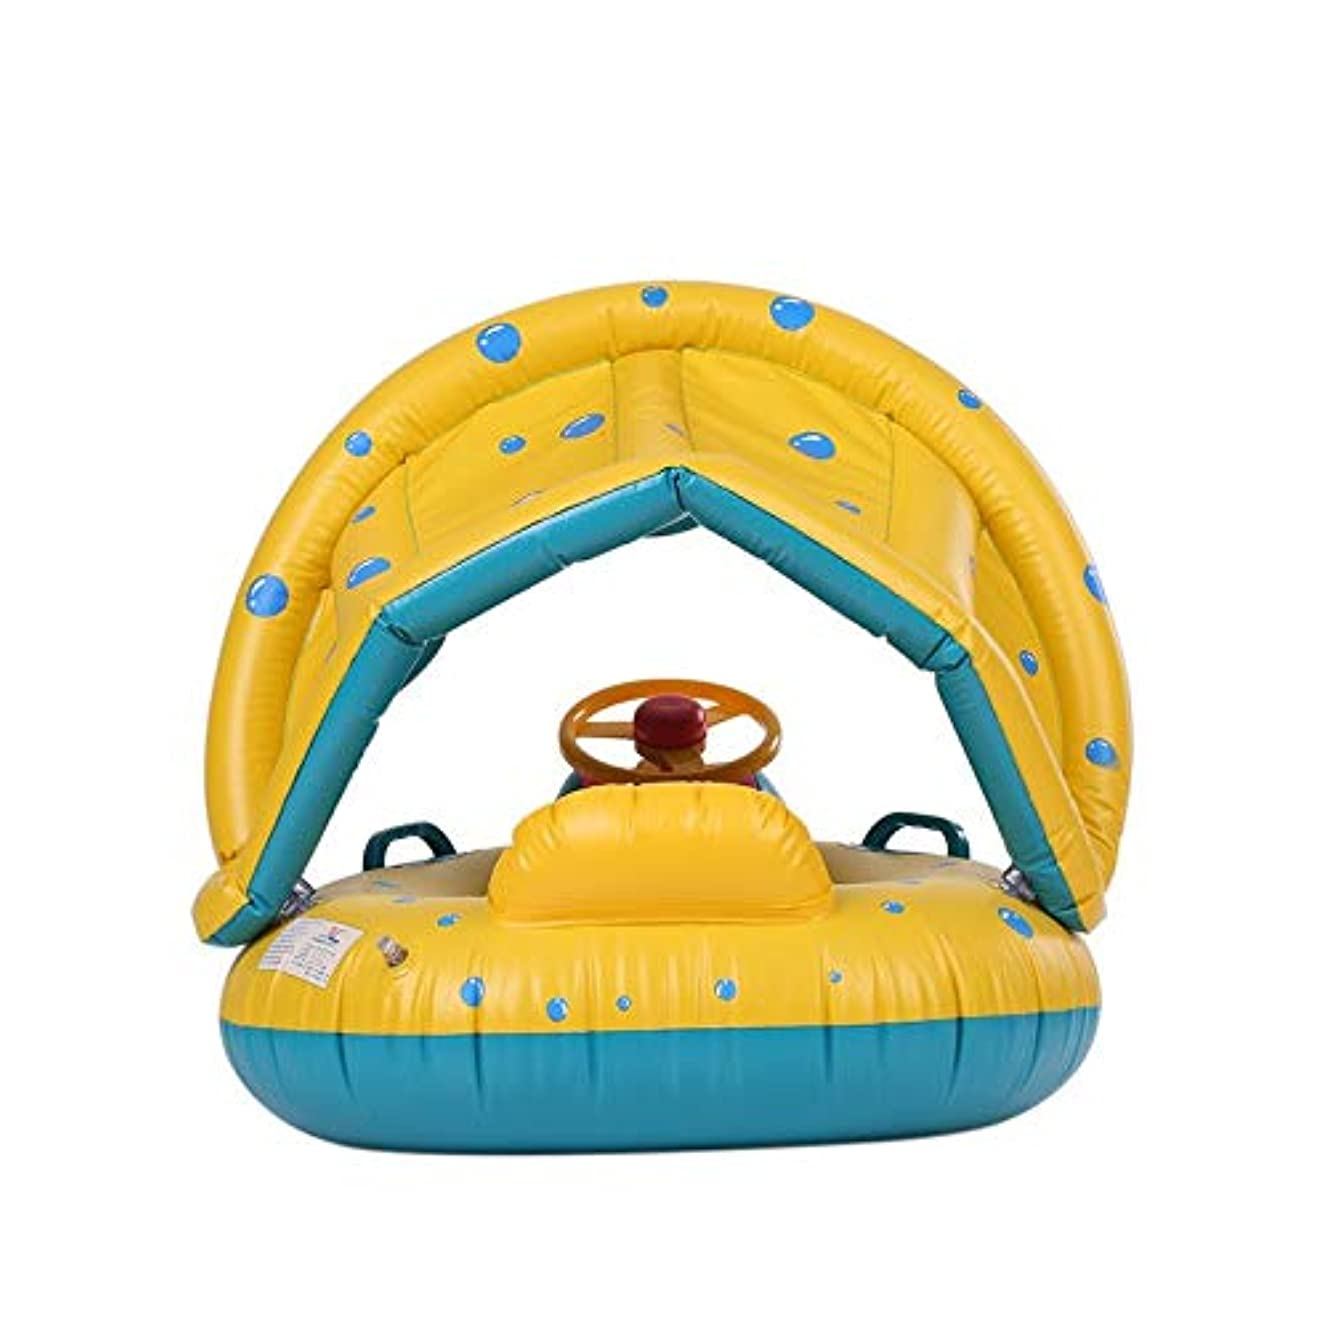 Lovelystar nflatable Soft Baby Swimming Ring Pool Float Boat Rider with Detachable Sun Canopy Shade Toy for Infant Toddler Kid Children